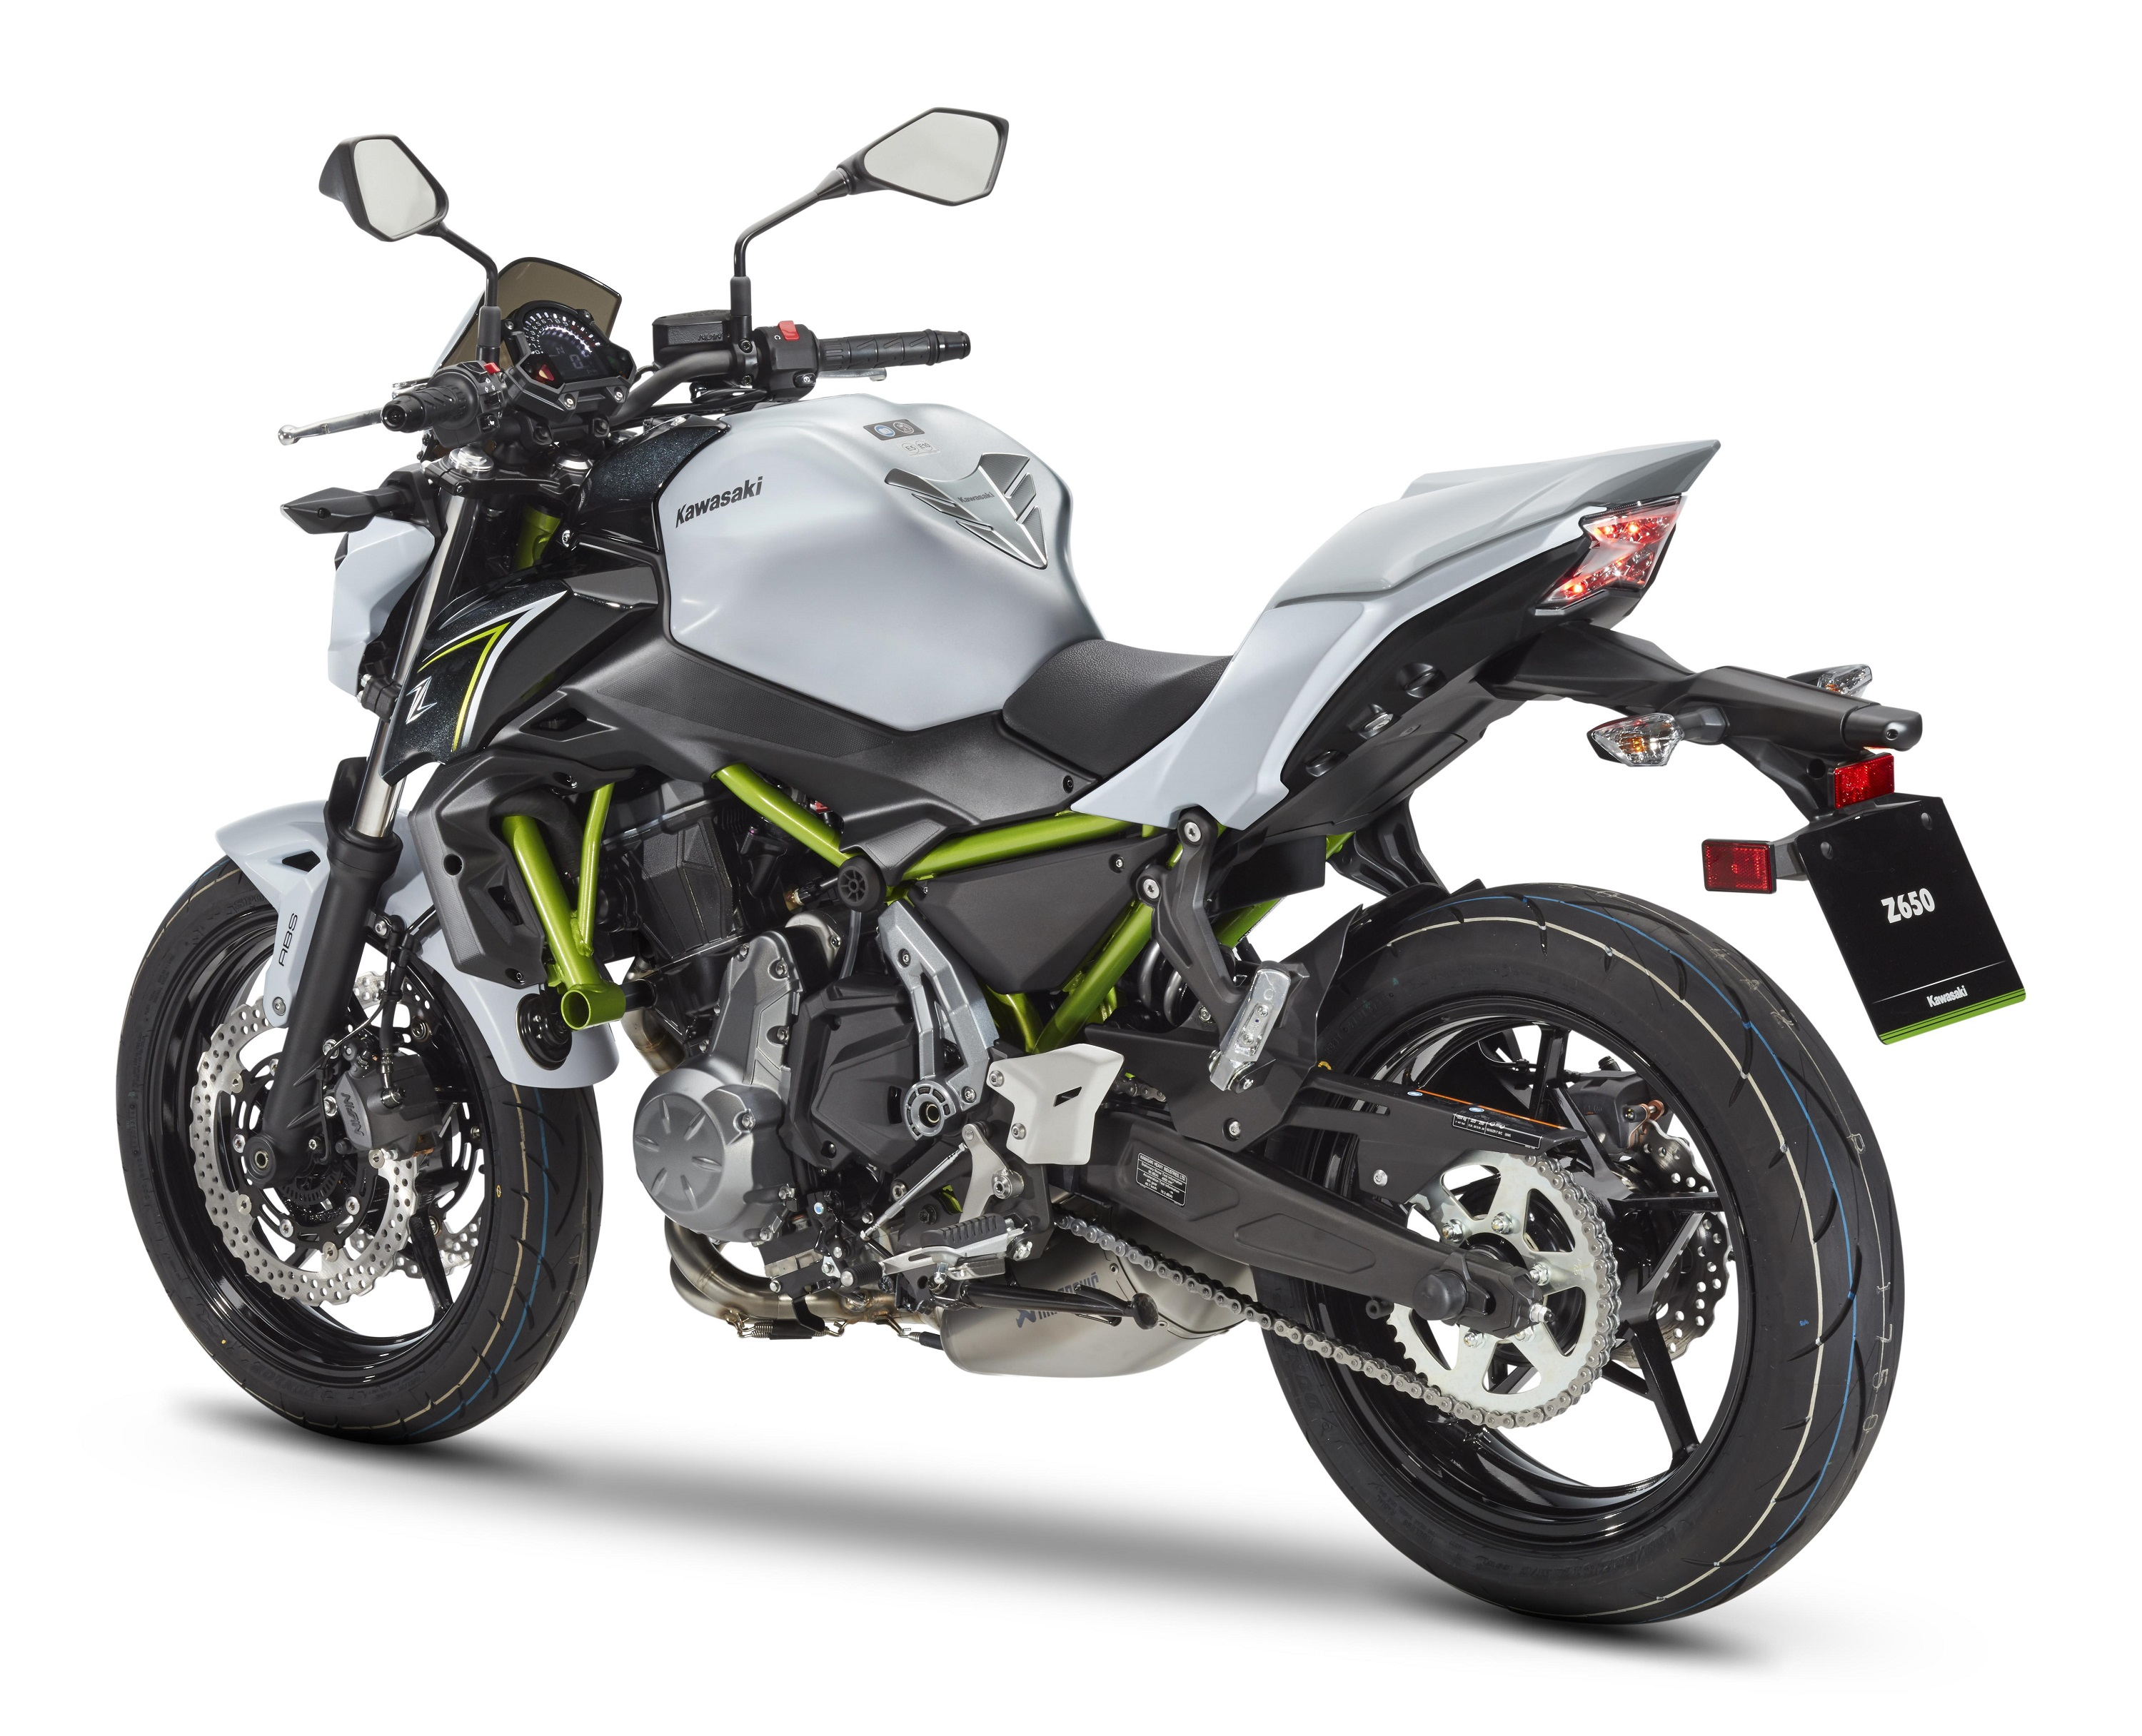 Kawasaki Z650 O For Sale Price Guide The Bike Market